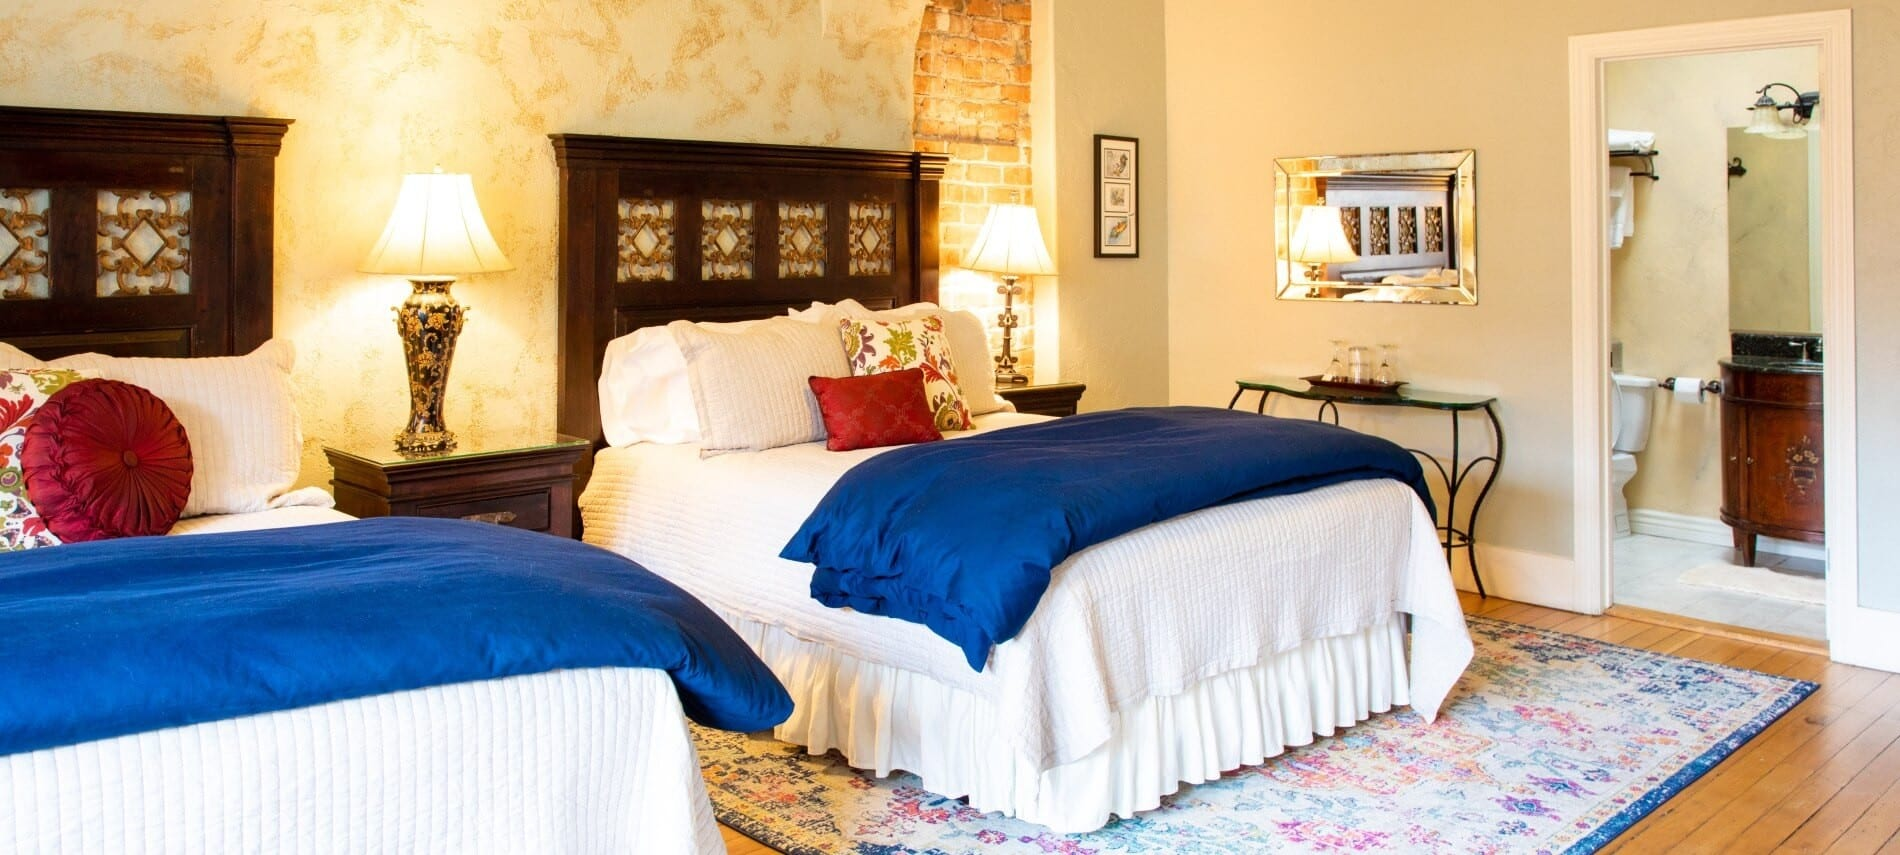 Two queen beds with white and blue bedding in a large guest room with doorway into bathroom